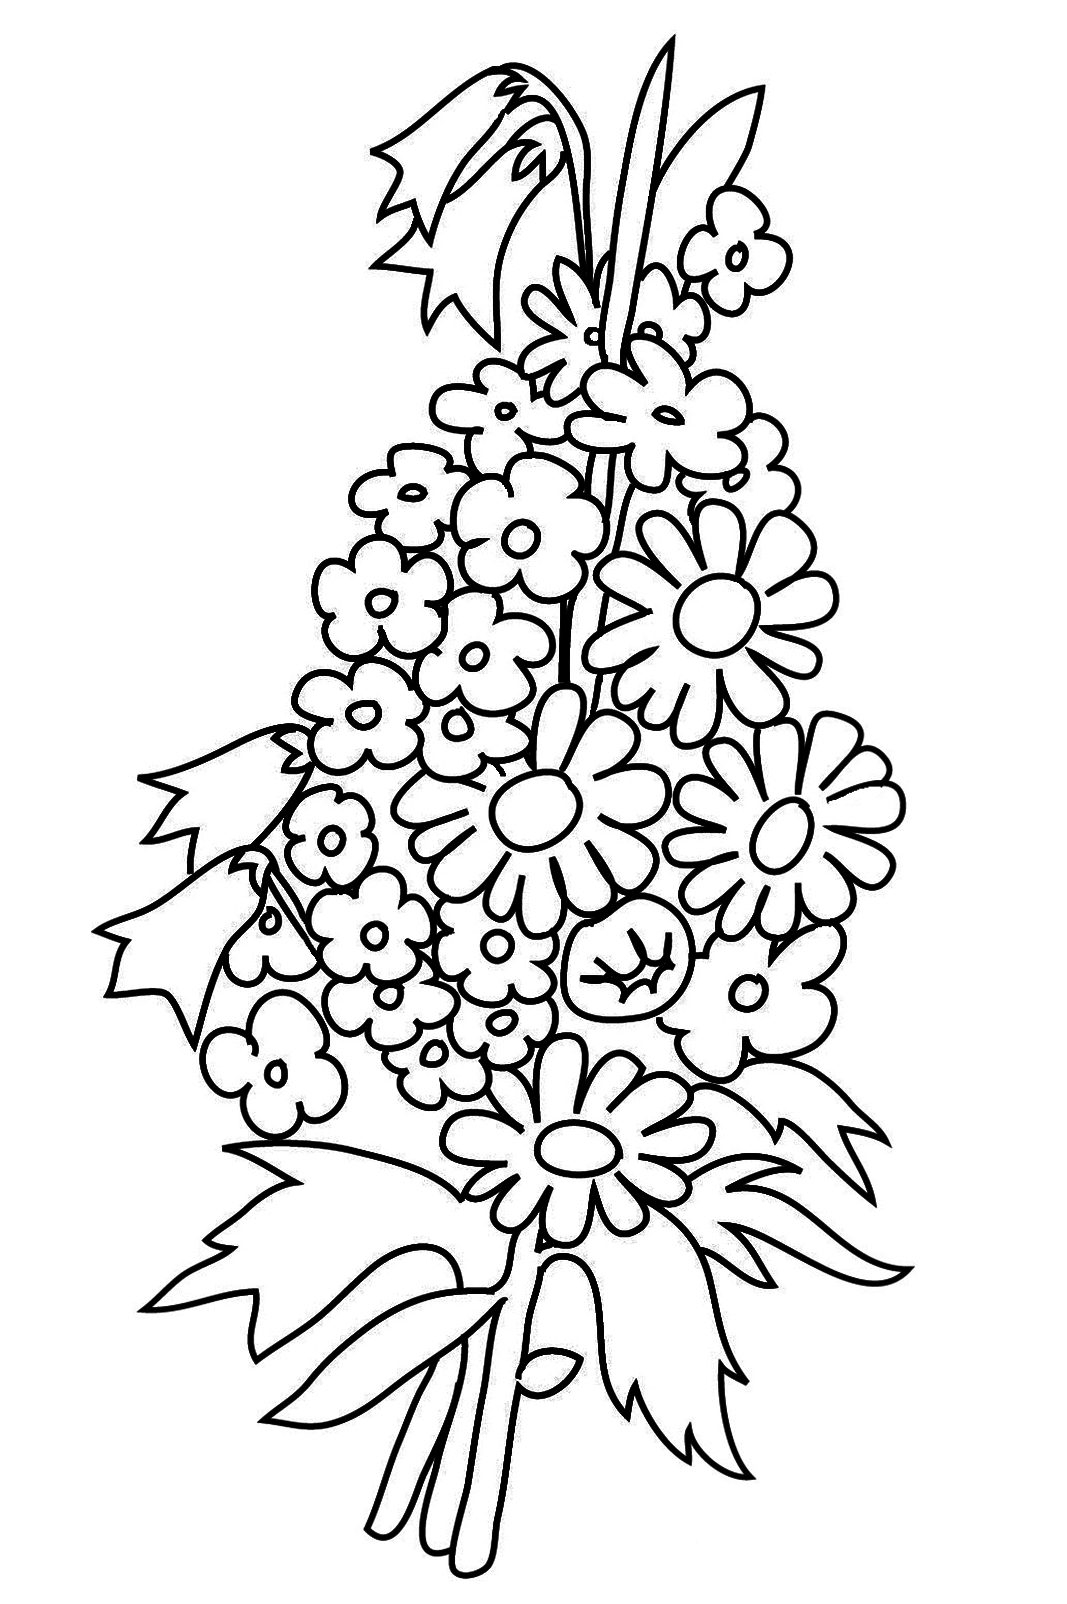 bouquet of roses coloring pages flower bouquet picture of roses for flower bouquet bouquet of pages roses coloring